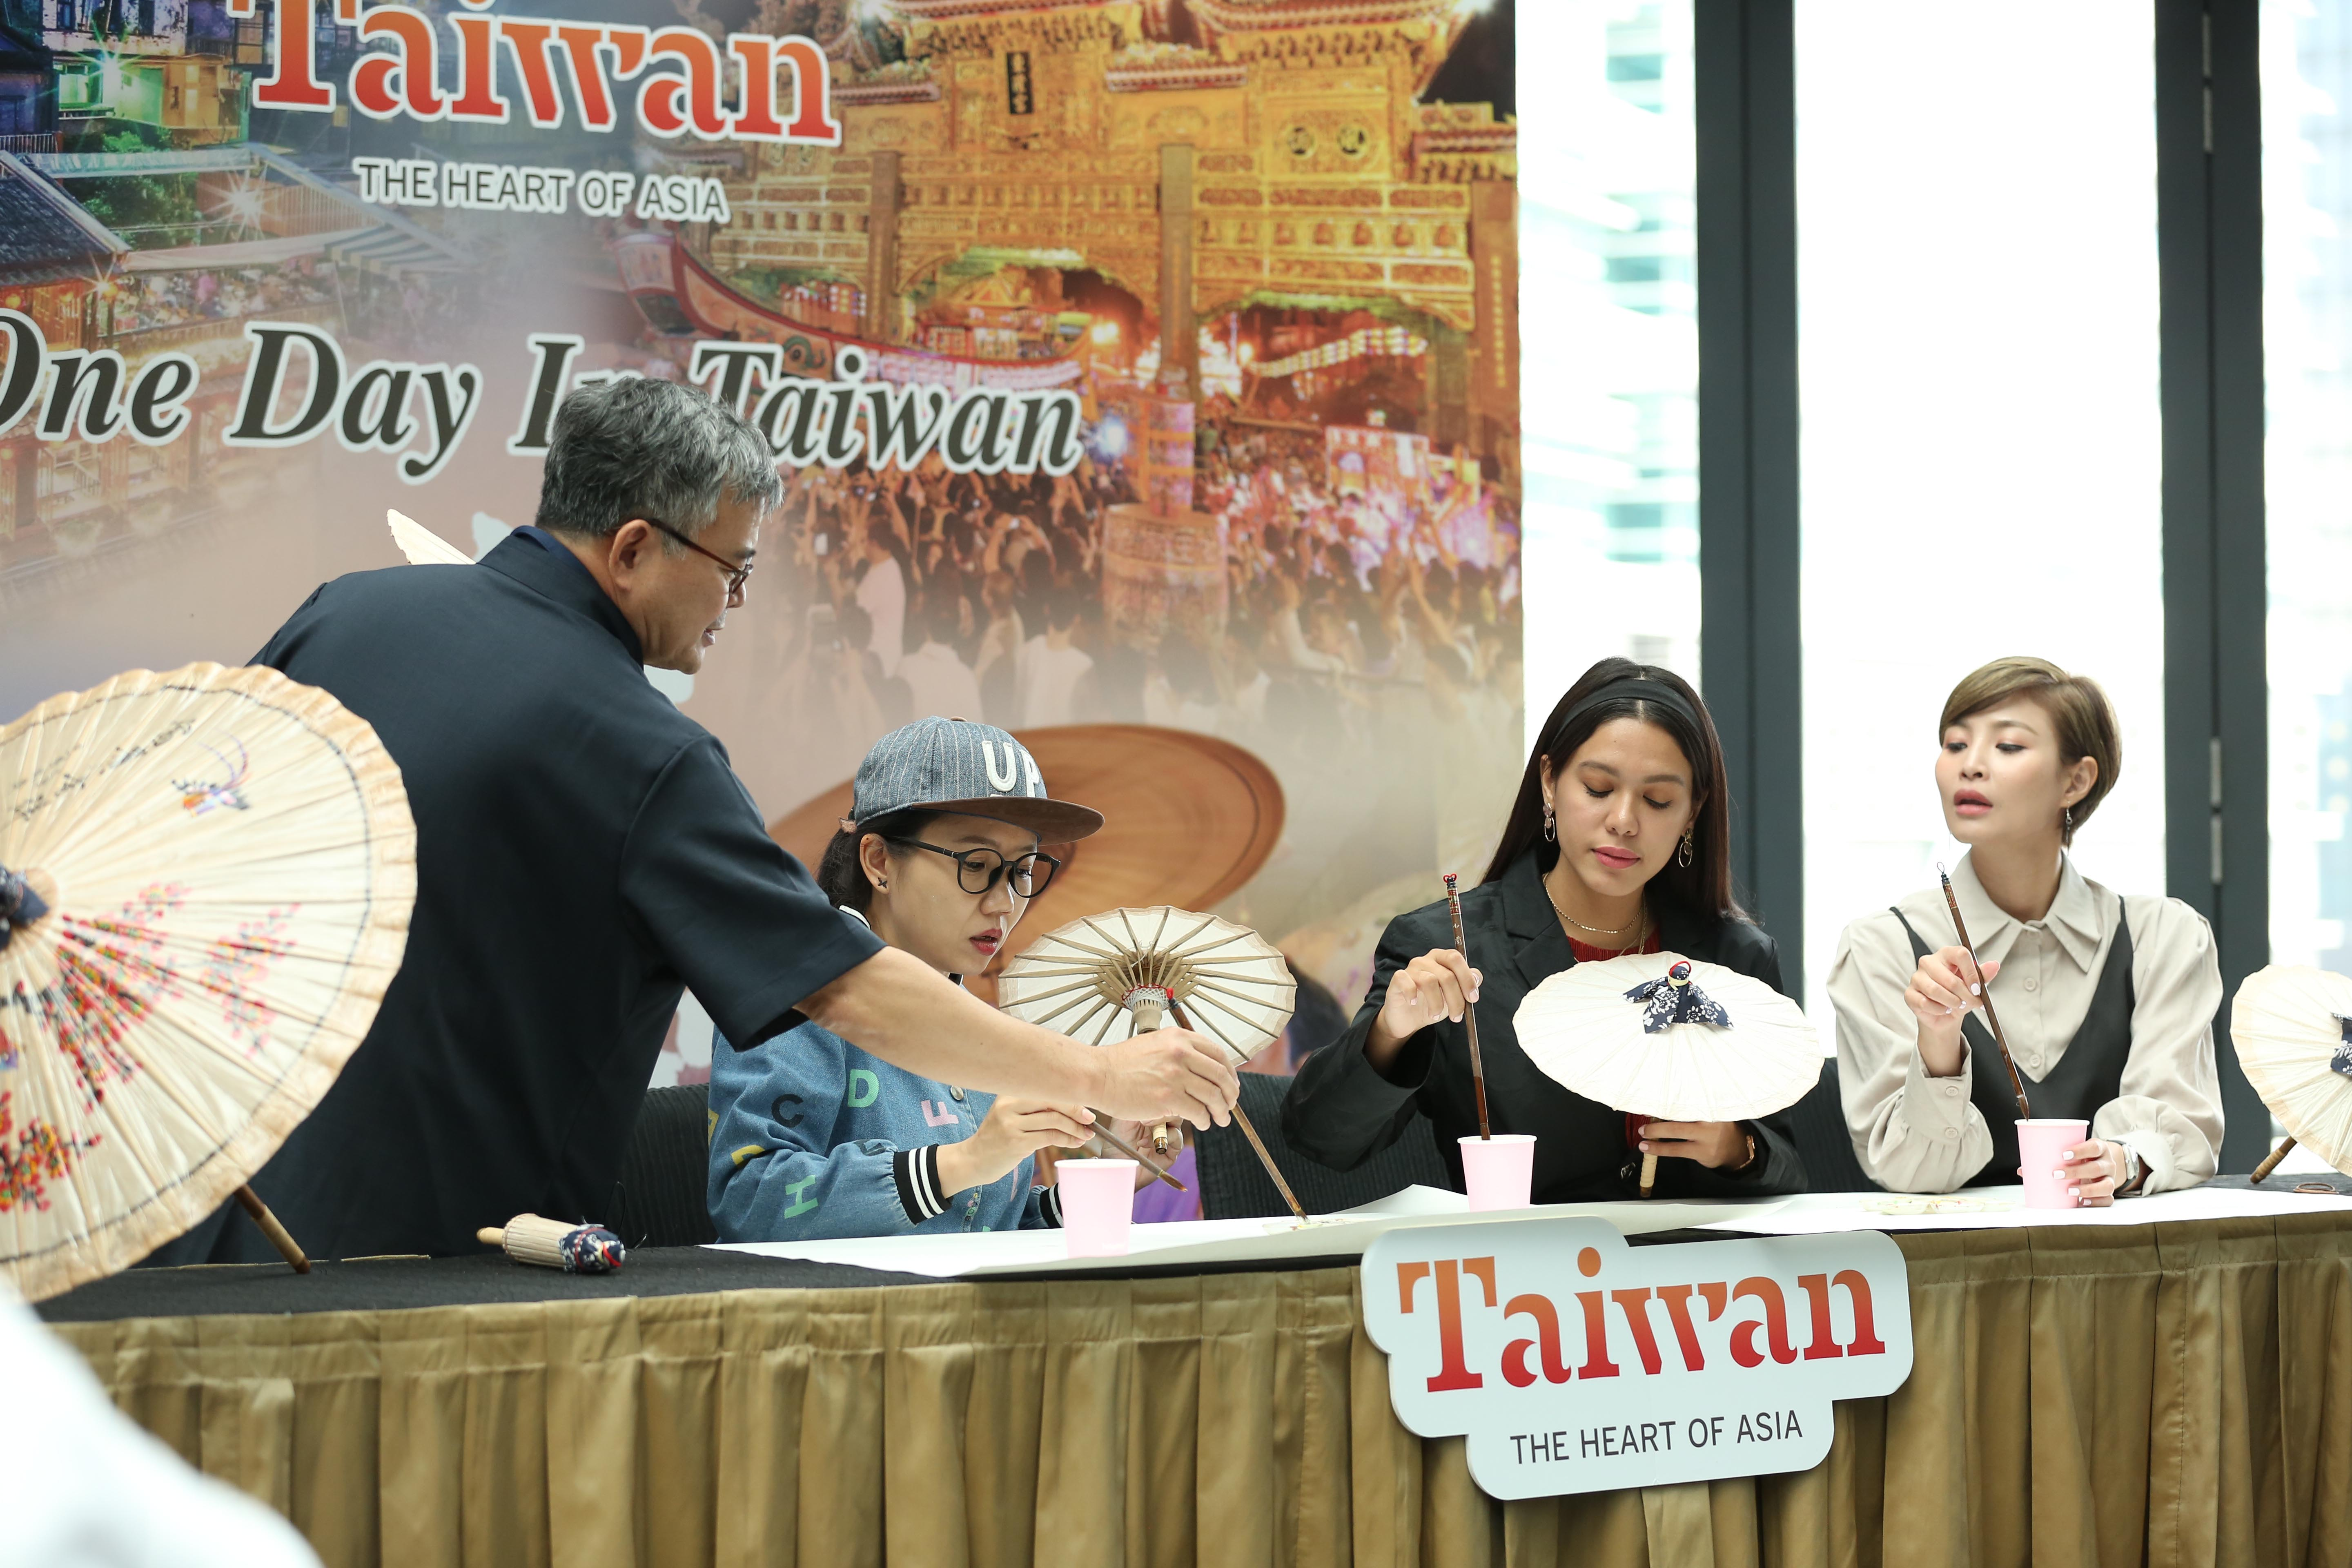 Oil-paper umbrella master from Taiwan  teaches YouTuber Cjlee (left 2), influencer Julia Farhana Marin and artist Janelle Chin(right) how to pain on this traditional umbrella.